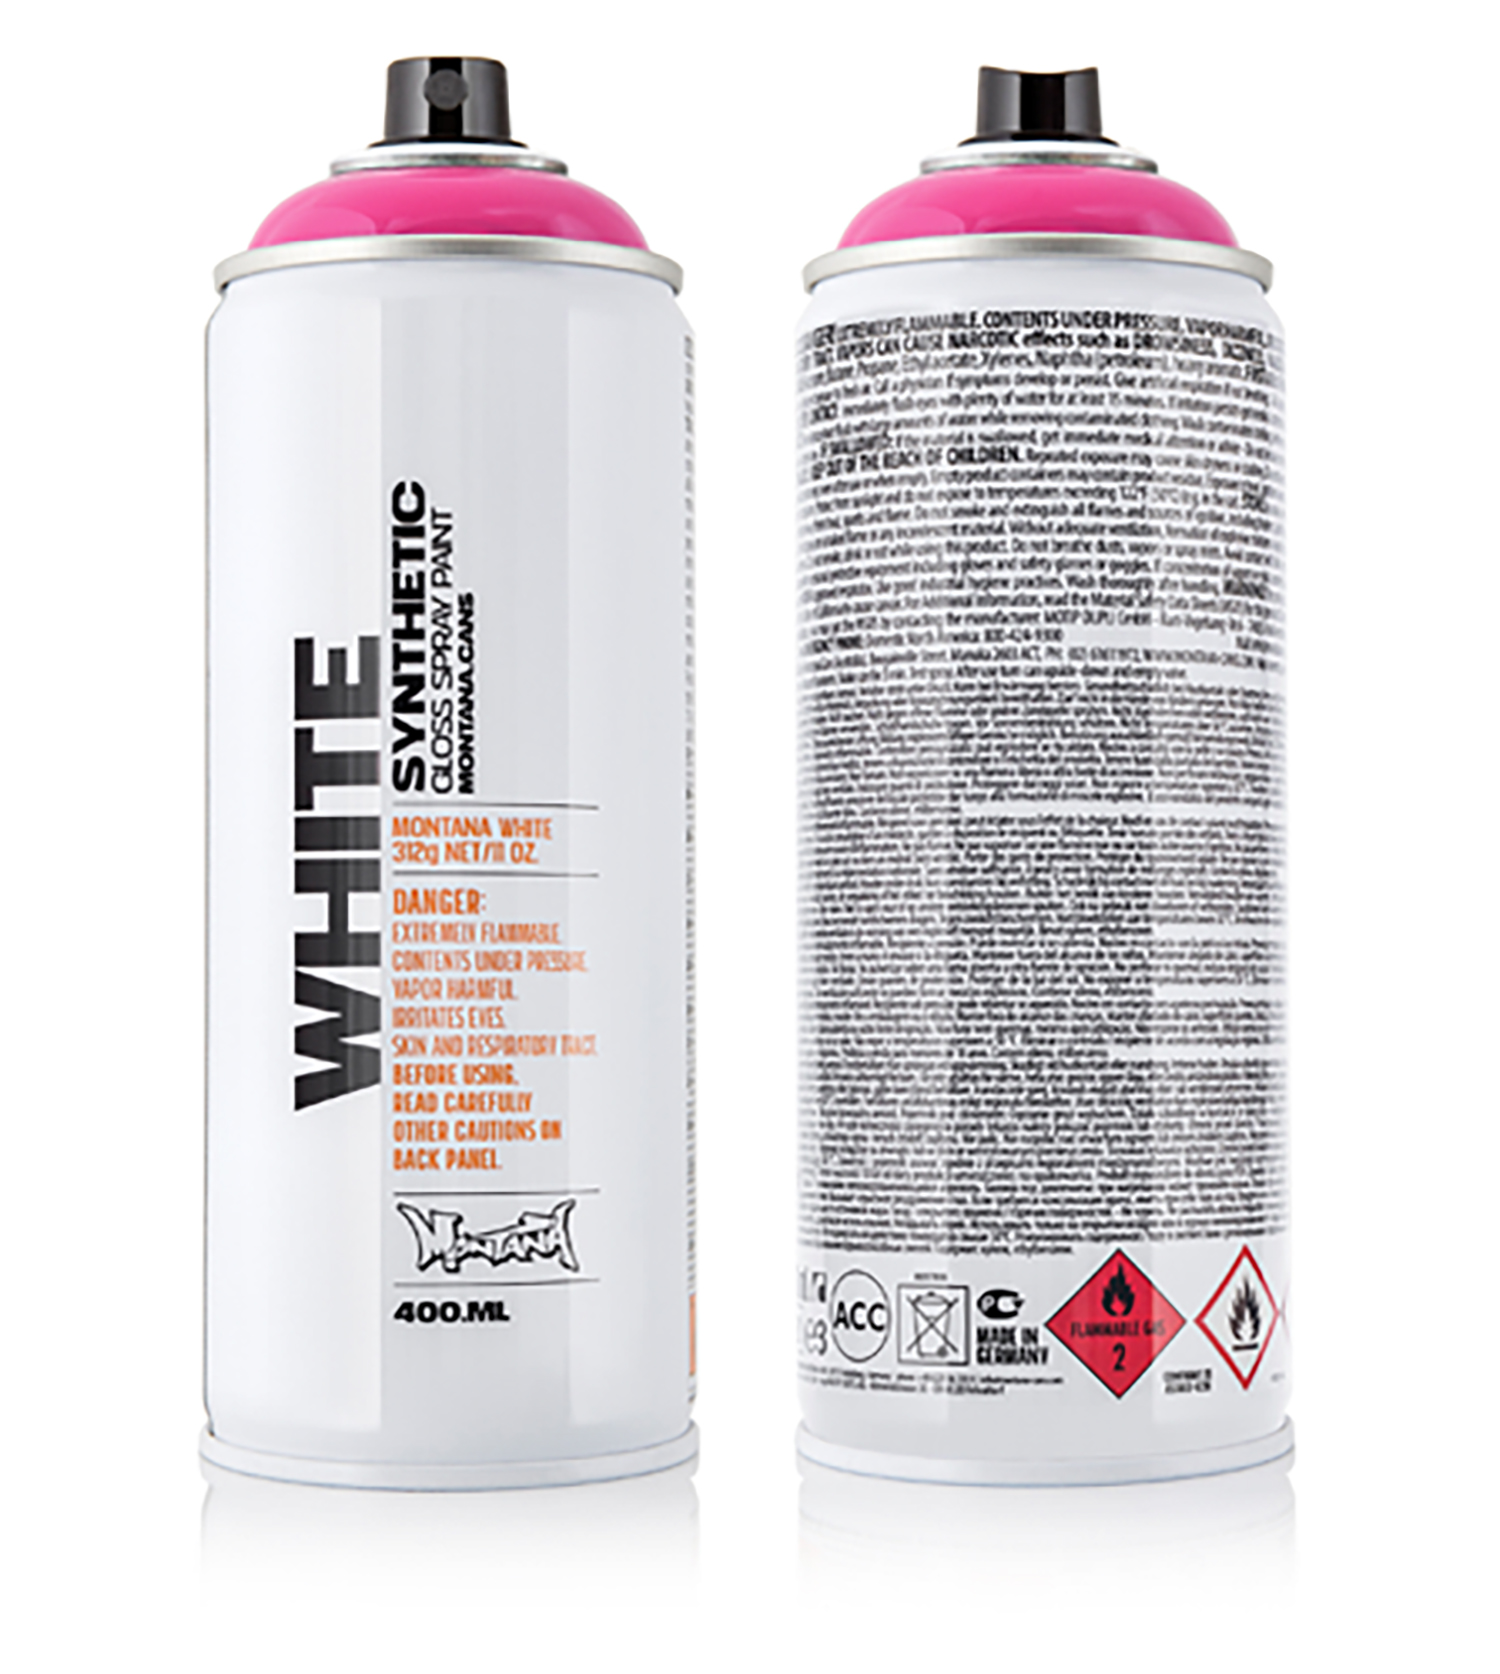 MONTANA-WHITE-SPRAY-400ML-3360